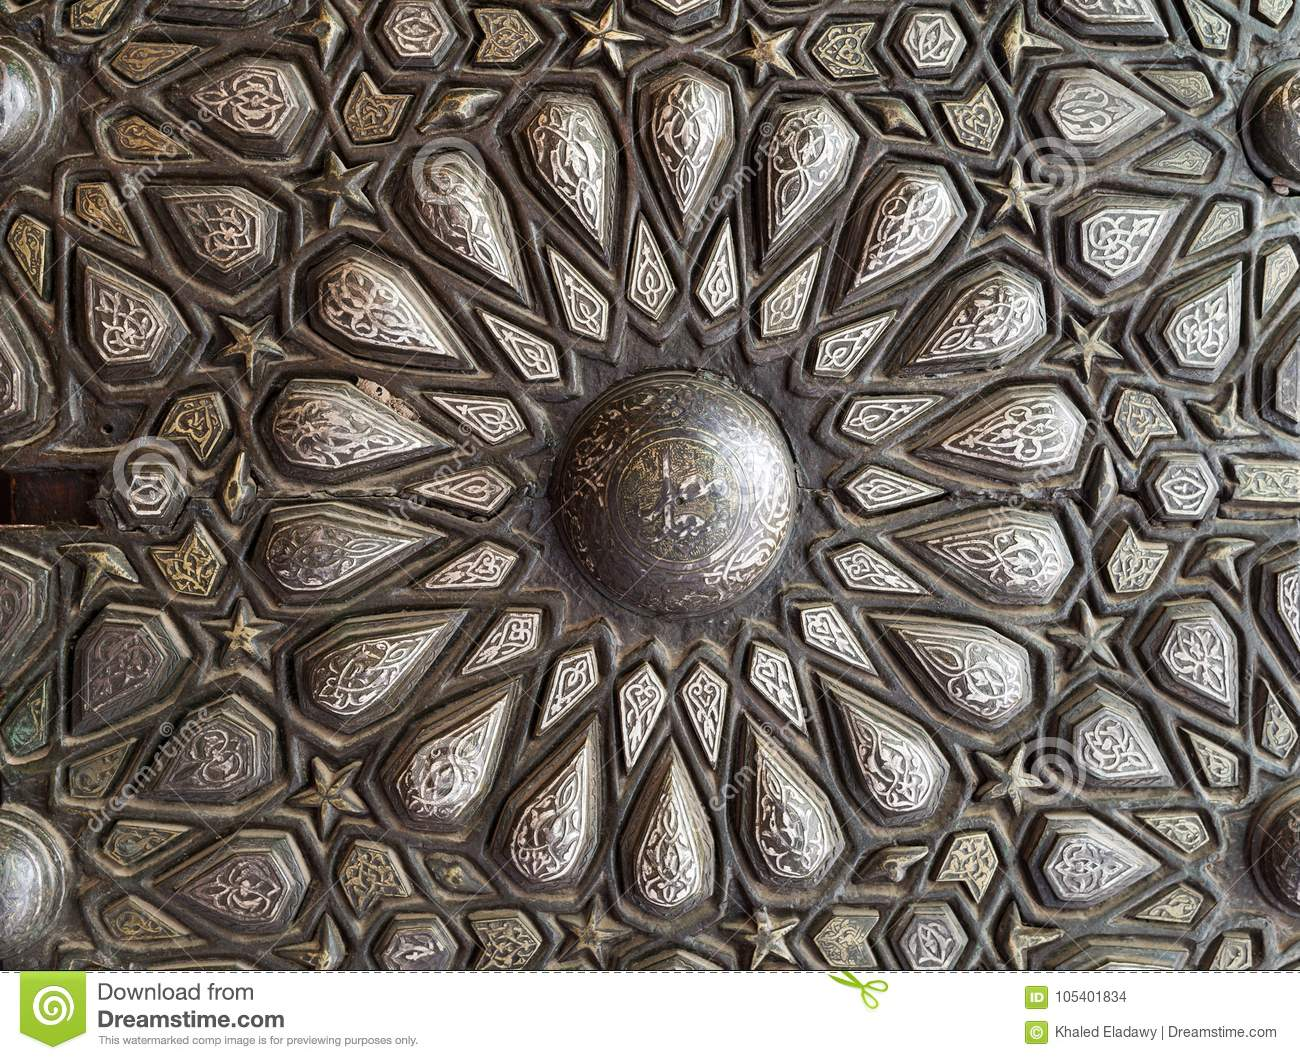 Ornaments of the bronze-plate ornate door, Palace of Prince Mohammed Ali Tewfik, Cairo, Egypt